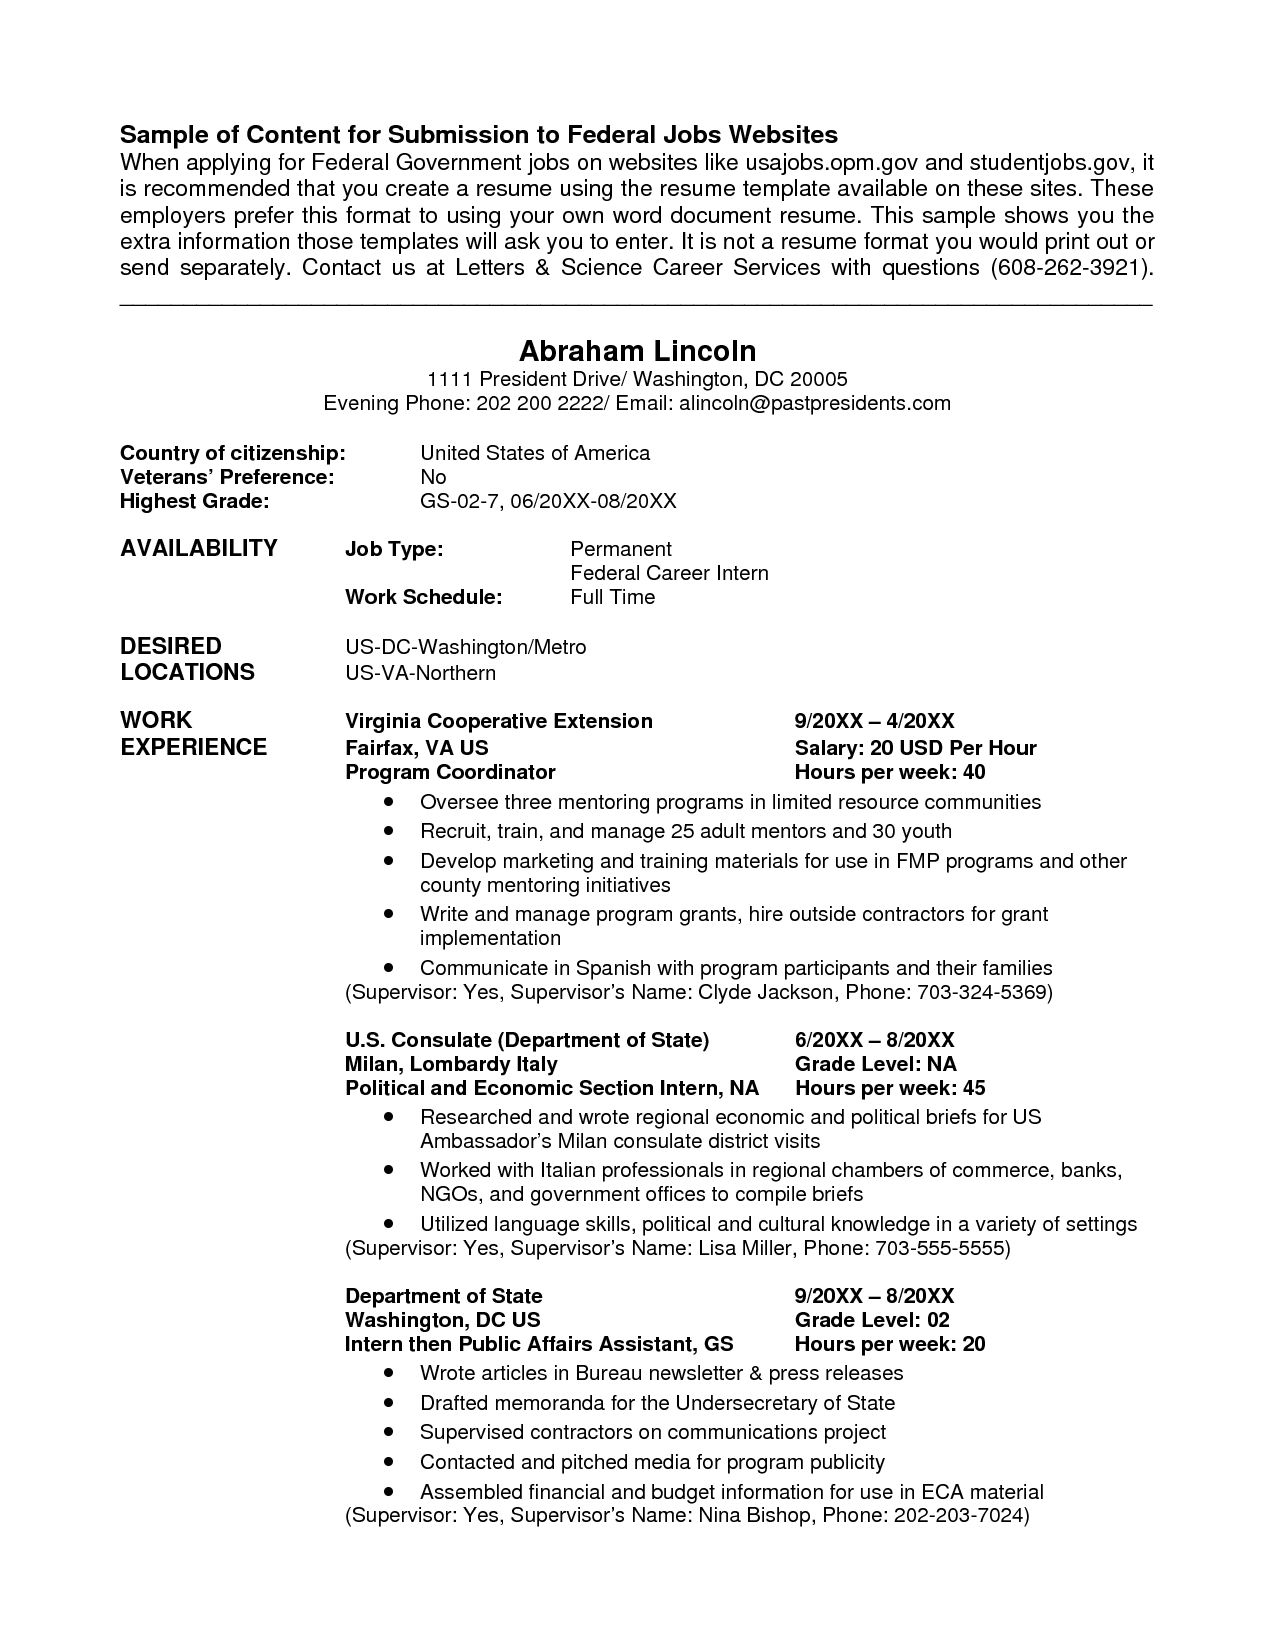 Resume Format Usa Jobs | Resume Format | Pinterest